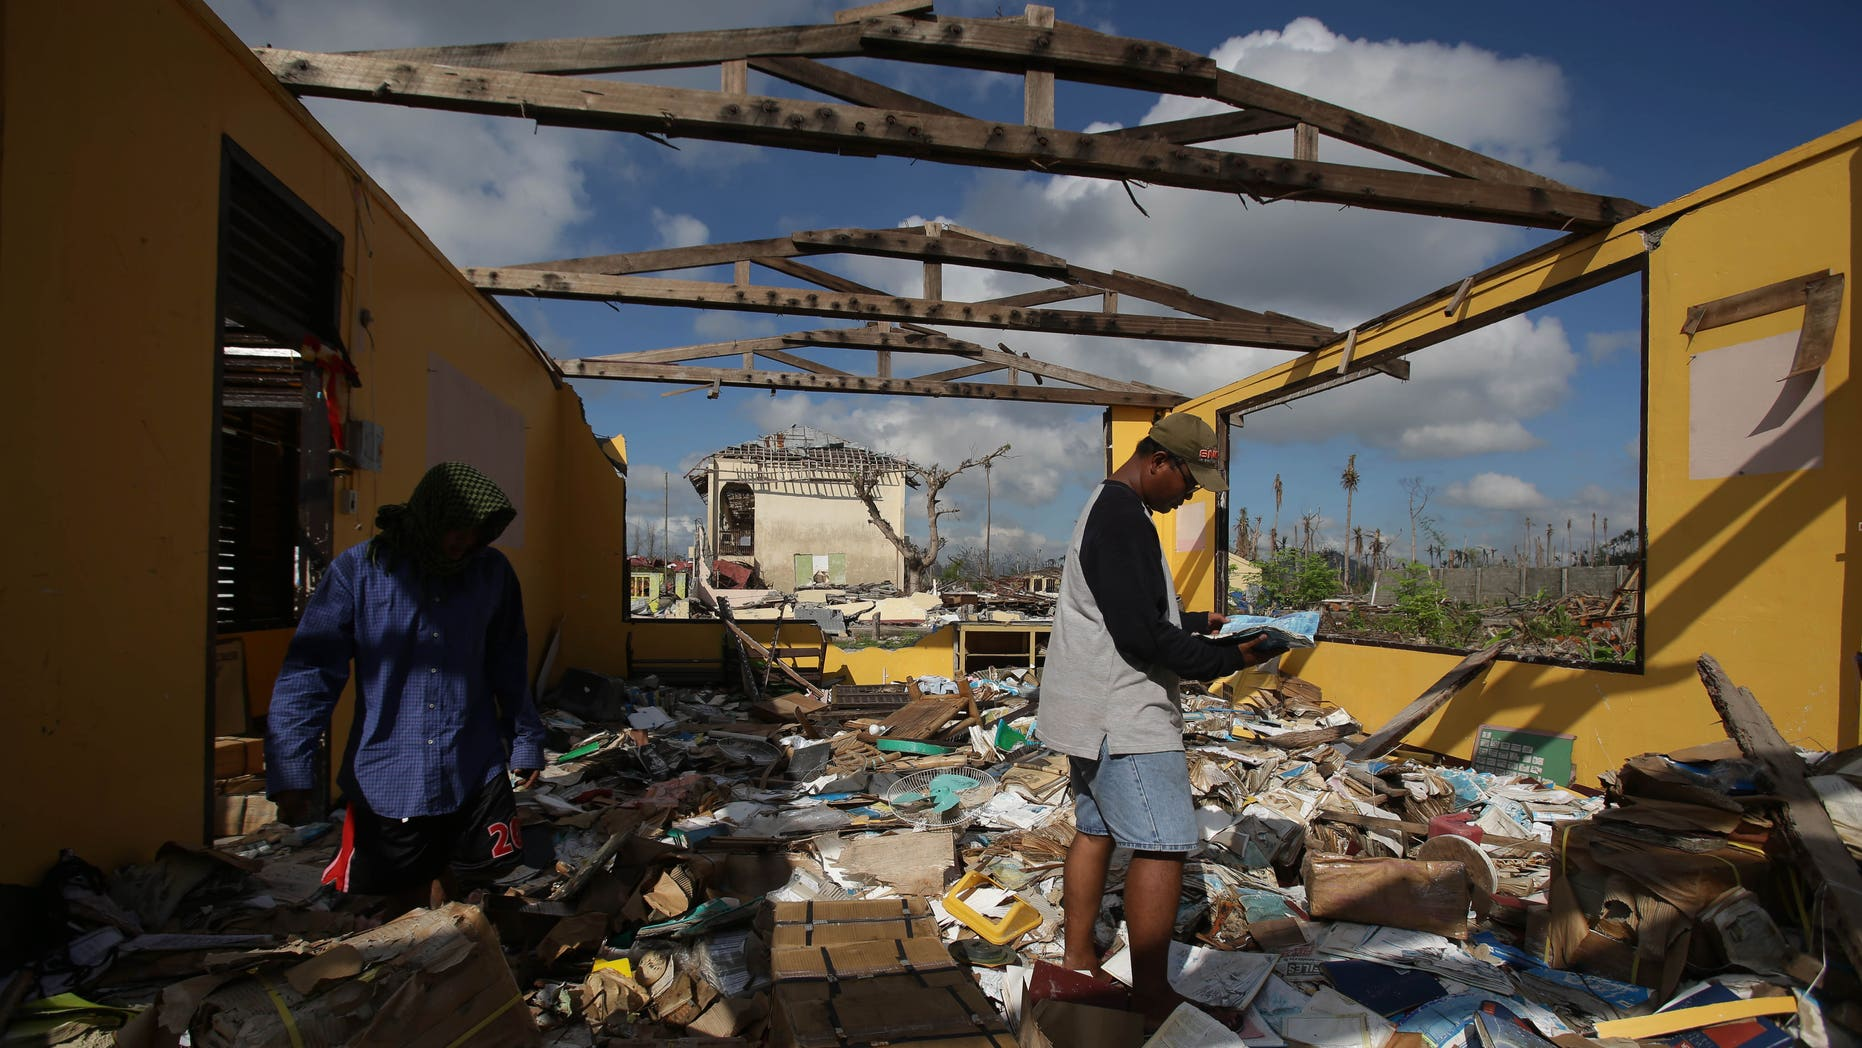 Dec. 9, 2013 - Typhoon survivor and district property custodian Norman Acala examines a book as he tries to save pieces from the school library at the Daniel Z. Romualdez Memorial Elementary School at typhoon-ravaged Tolosa town, Leyte province, central Philippines. Tens of thousands are living amid the ruins of their former lives, underneath shelters made from scavenged materials and handouts.